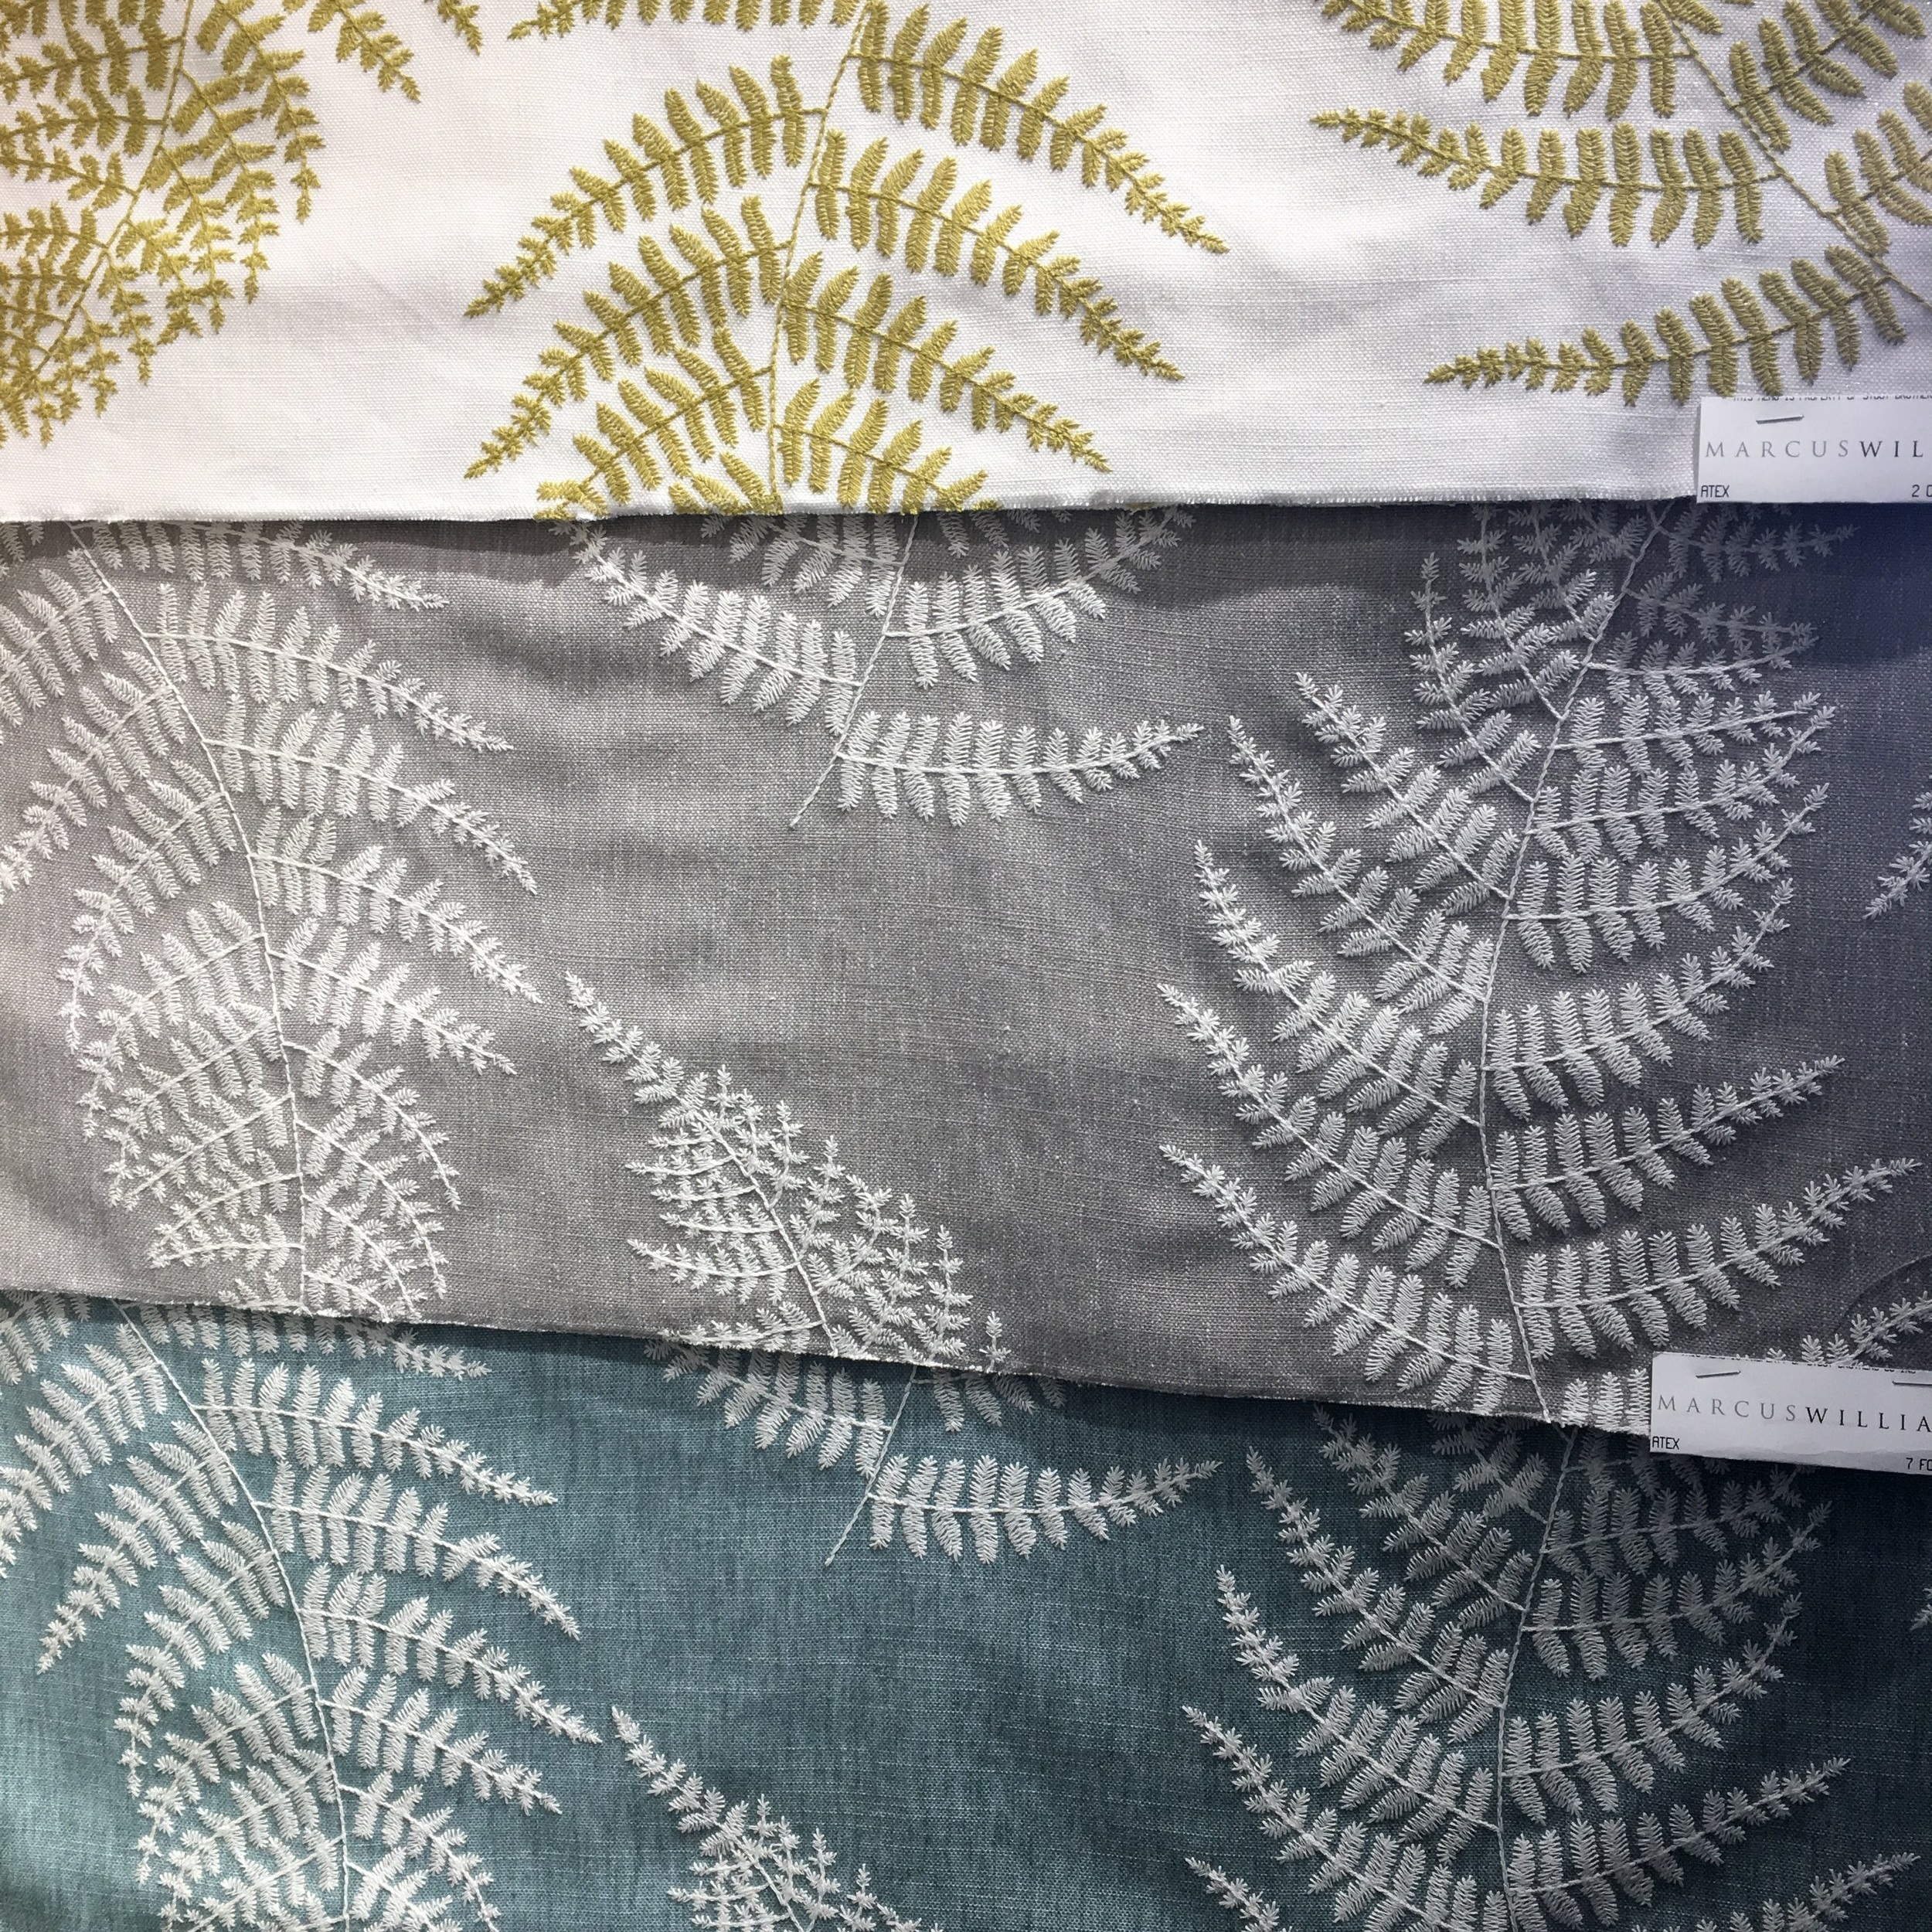 Ferns embroidered on linen. Wouldn't this make the most glorious garden room draperies?